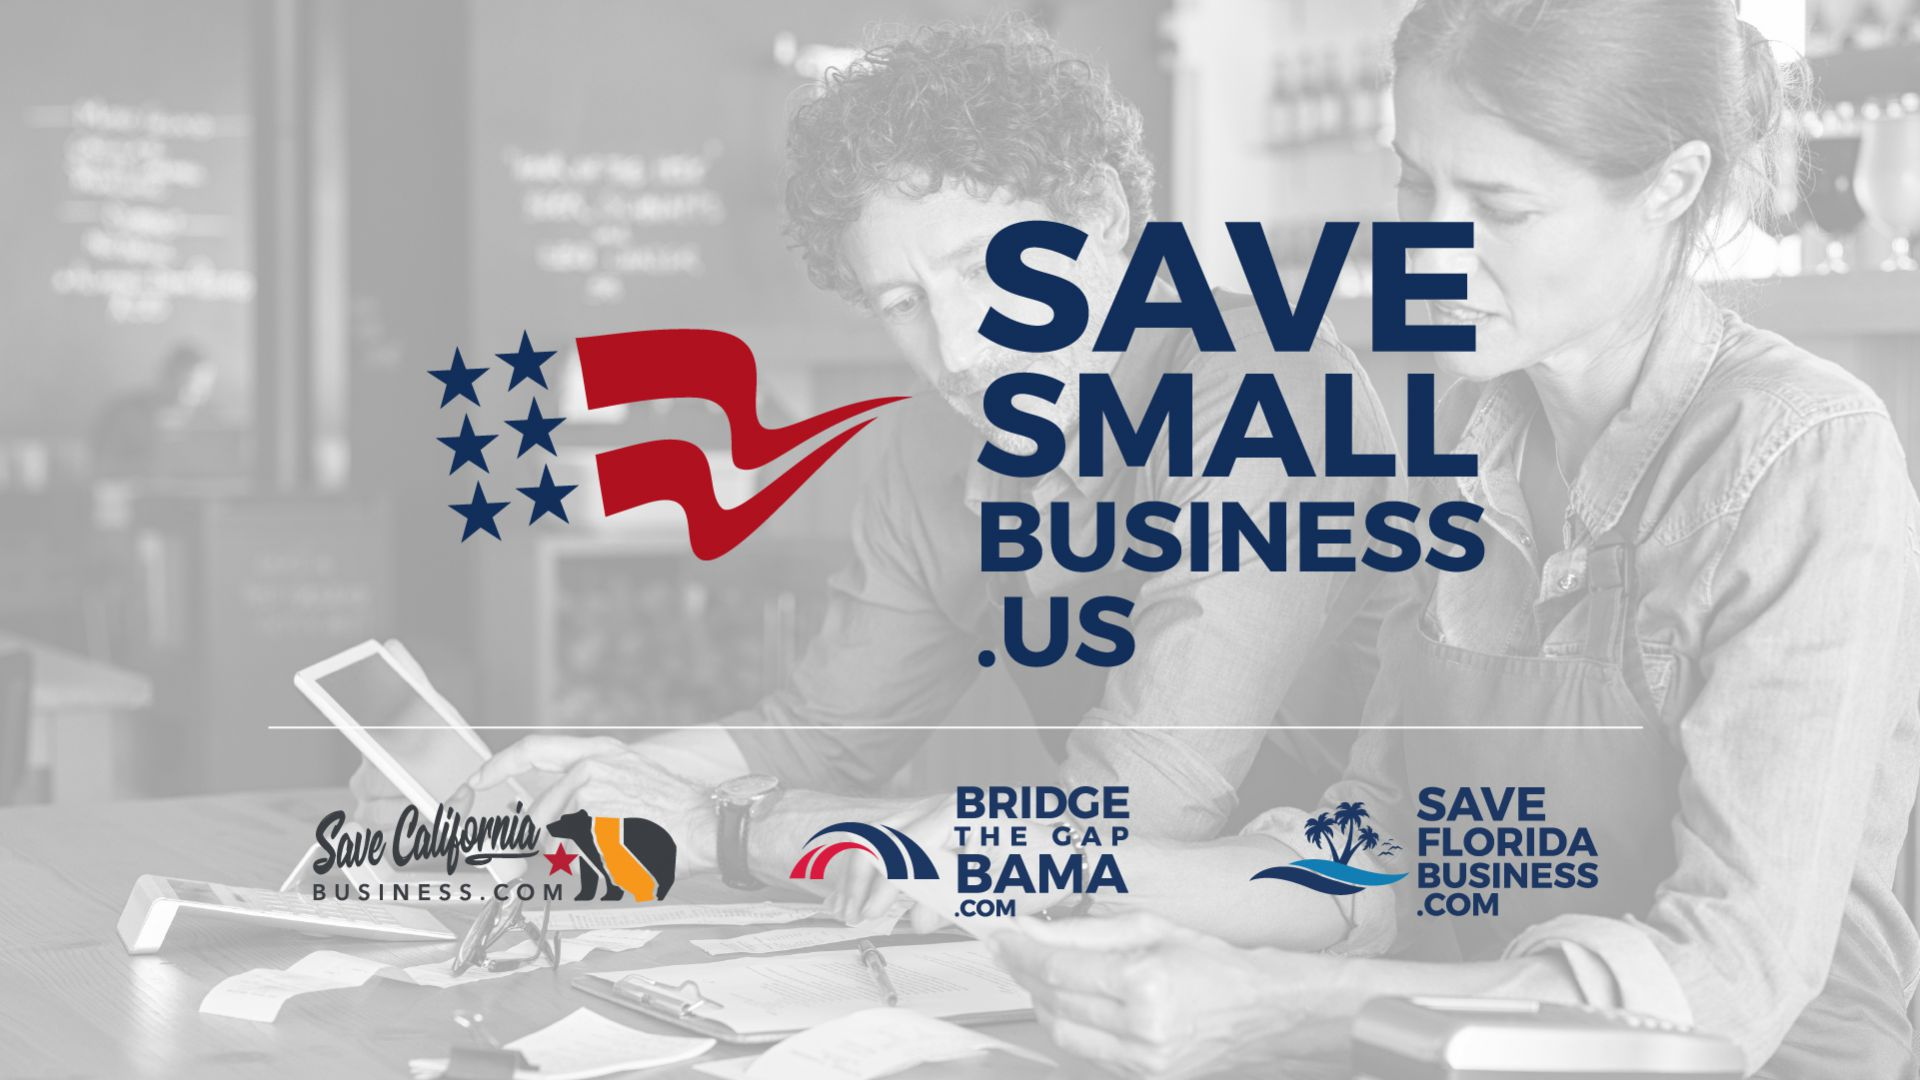 Logo for Save Small Business US